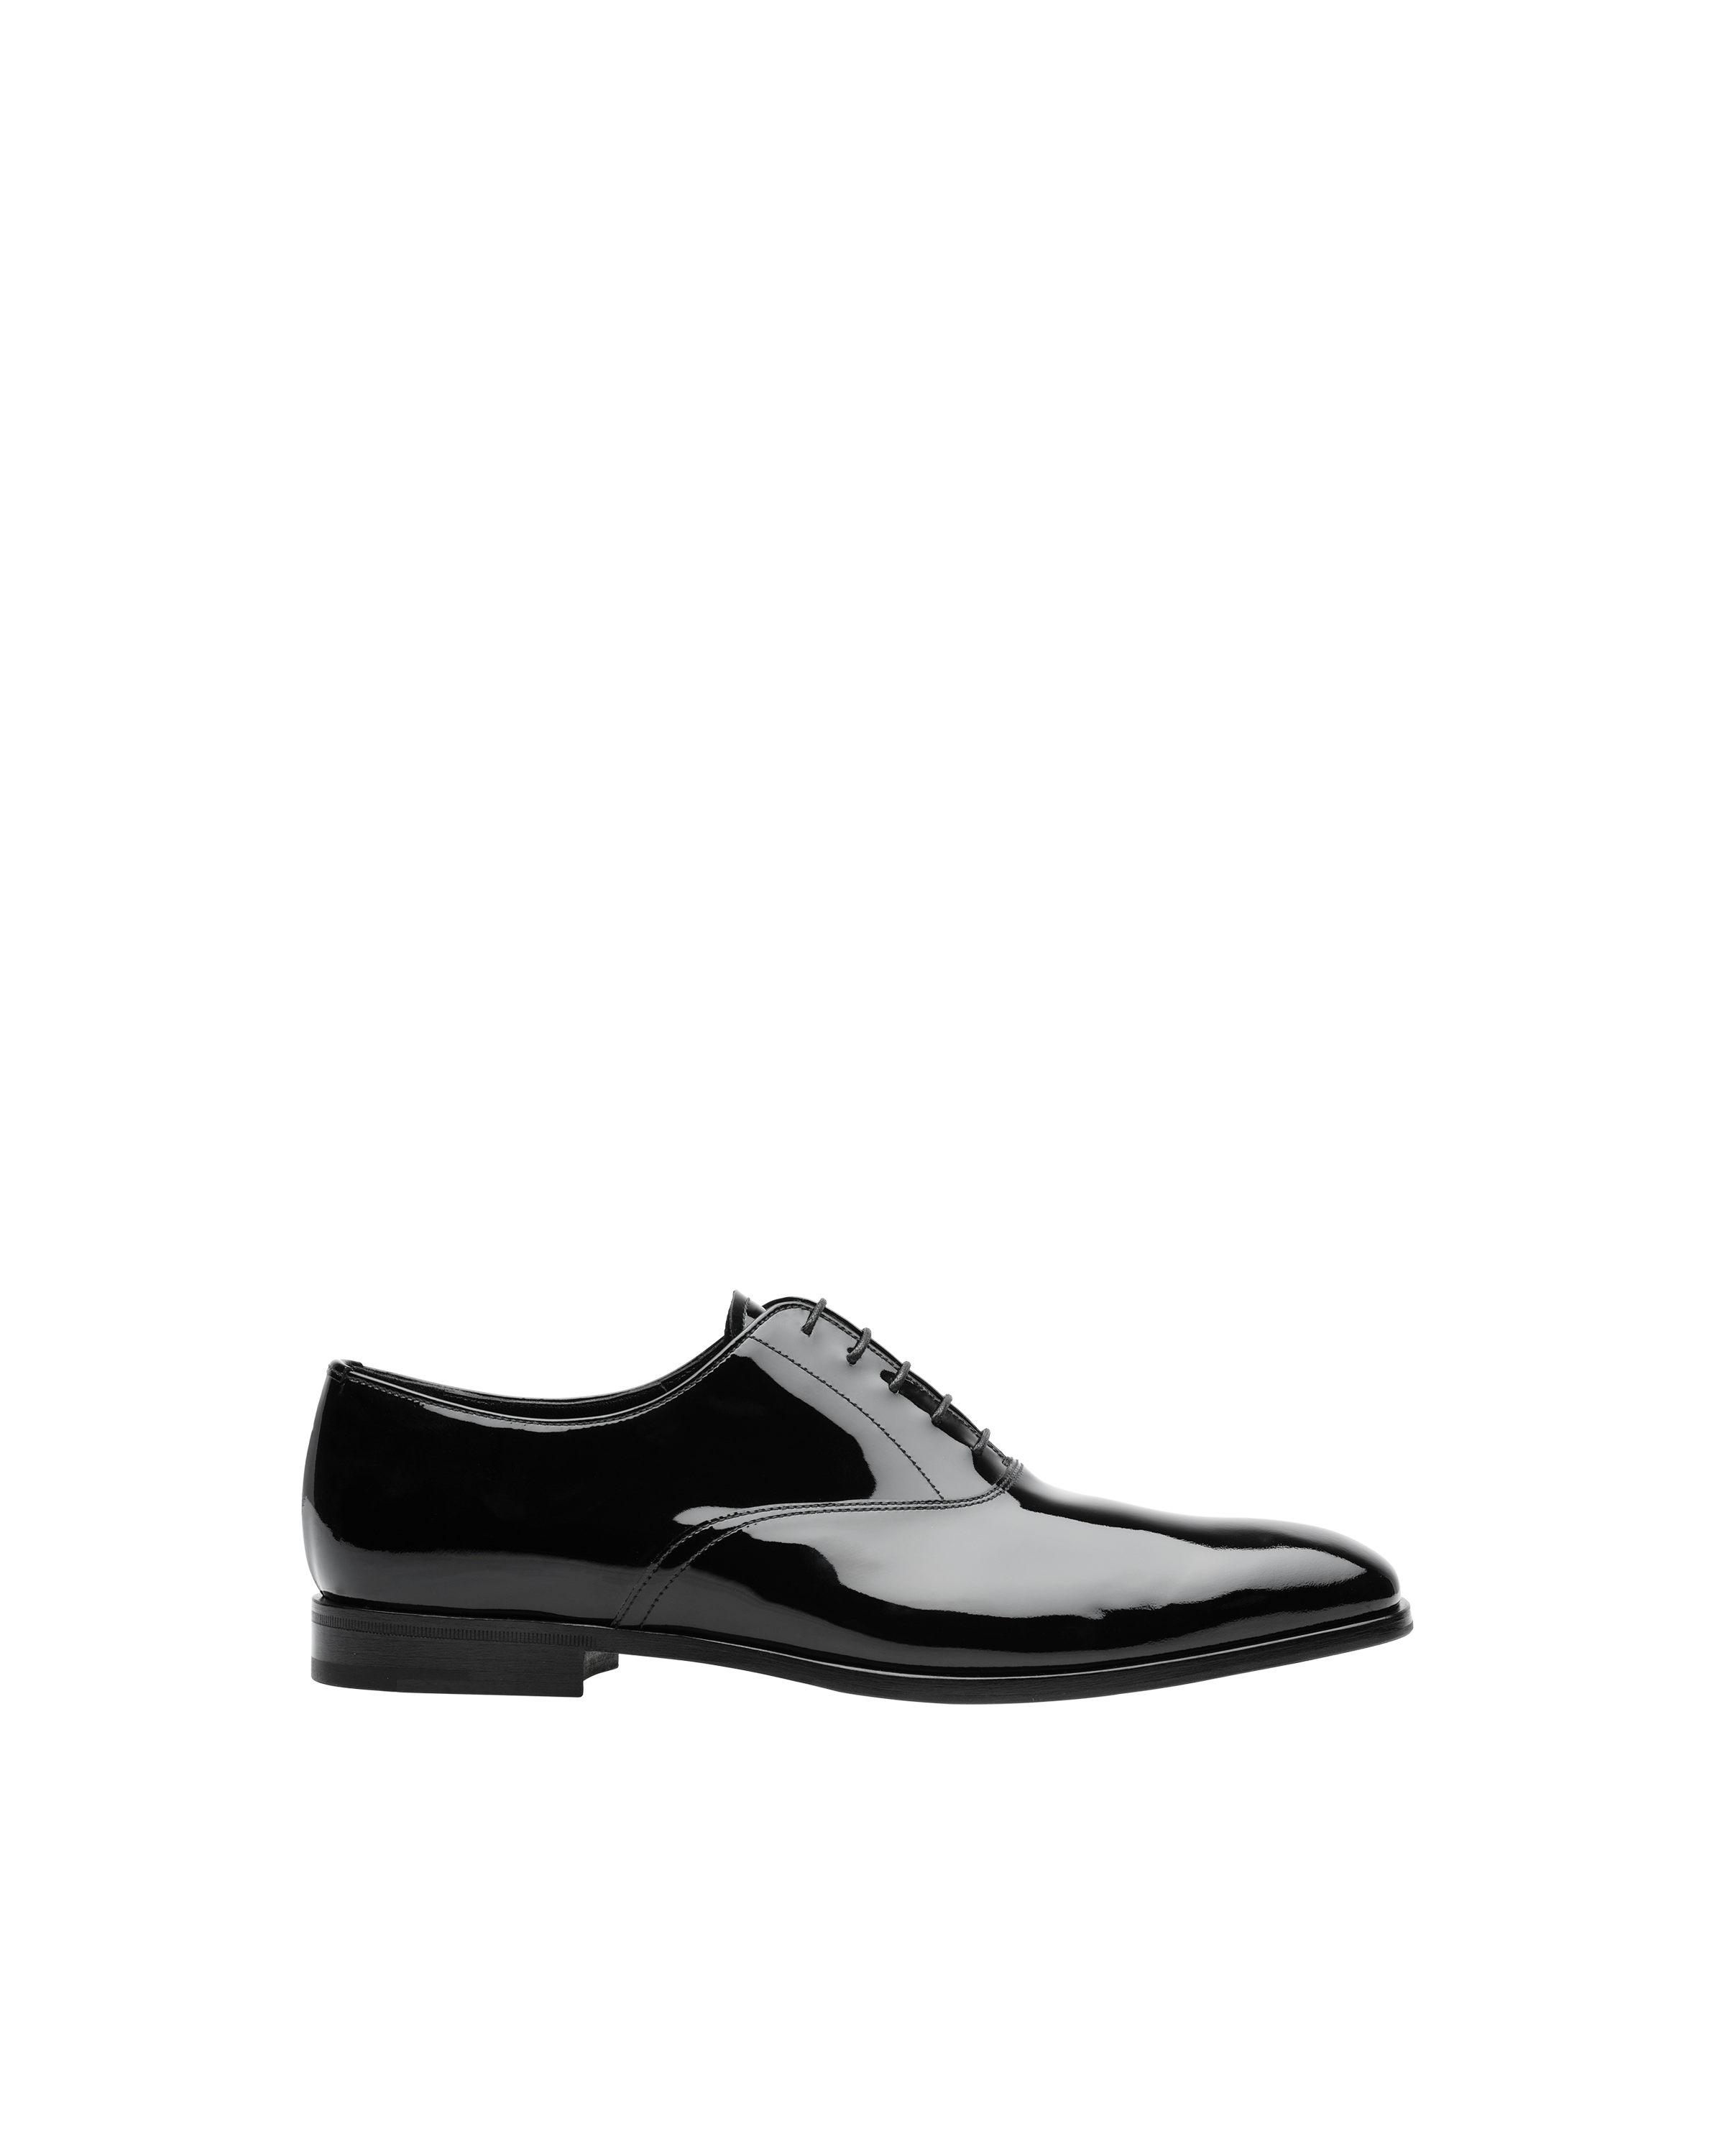 Patent leather Oxford shoes | Prada